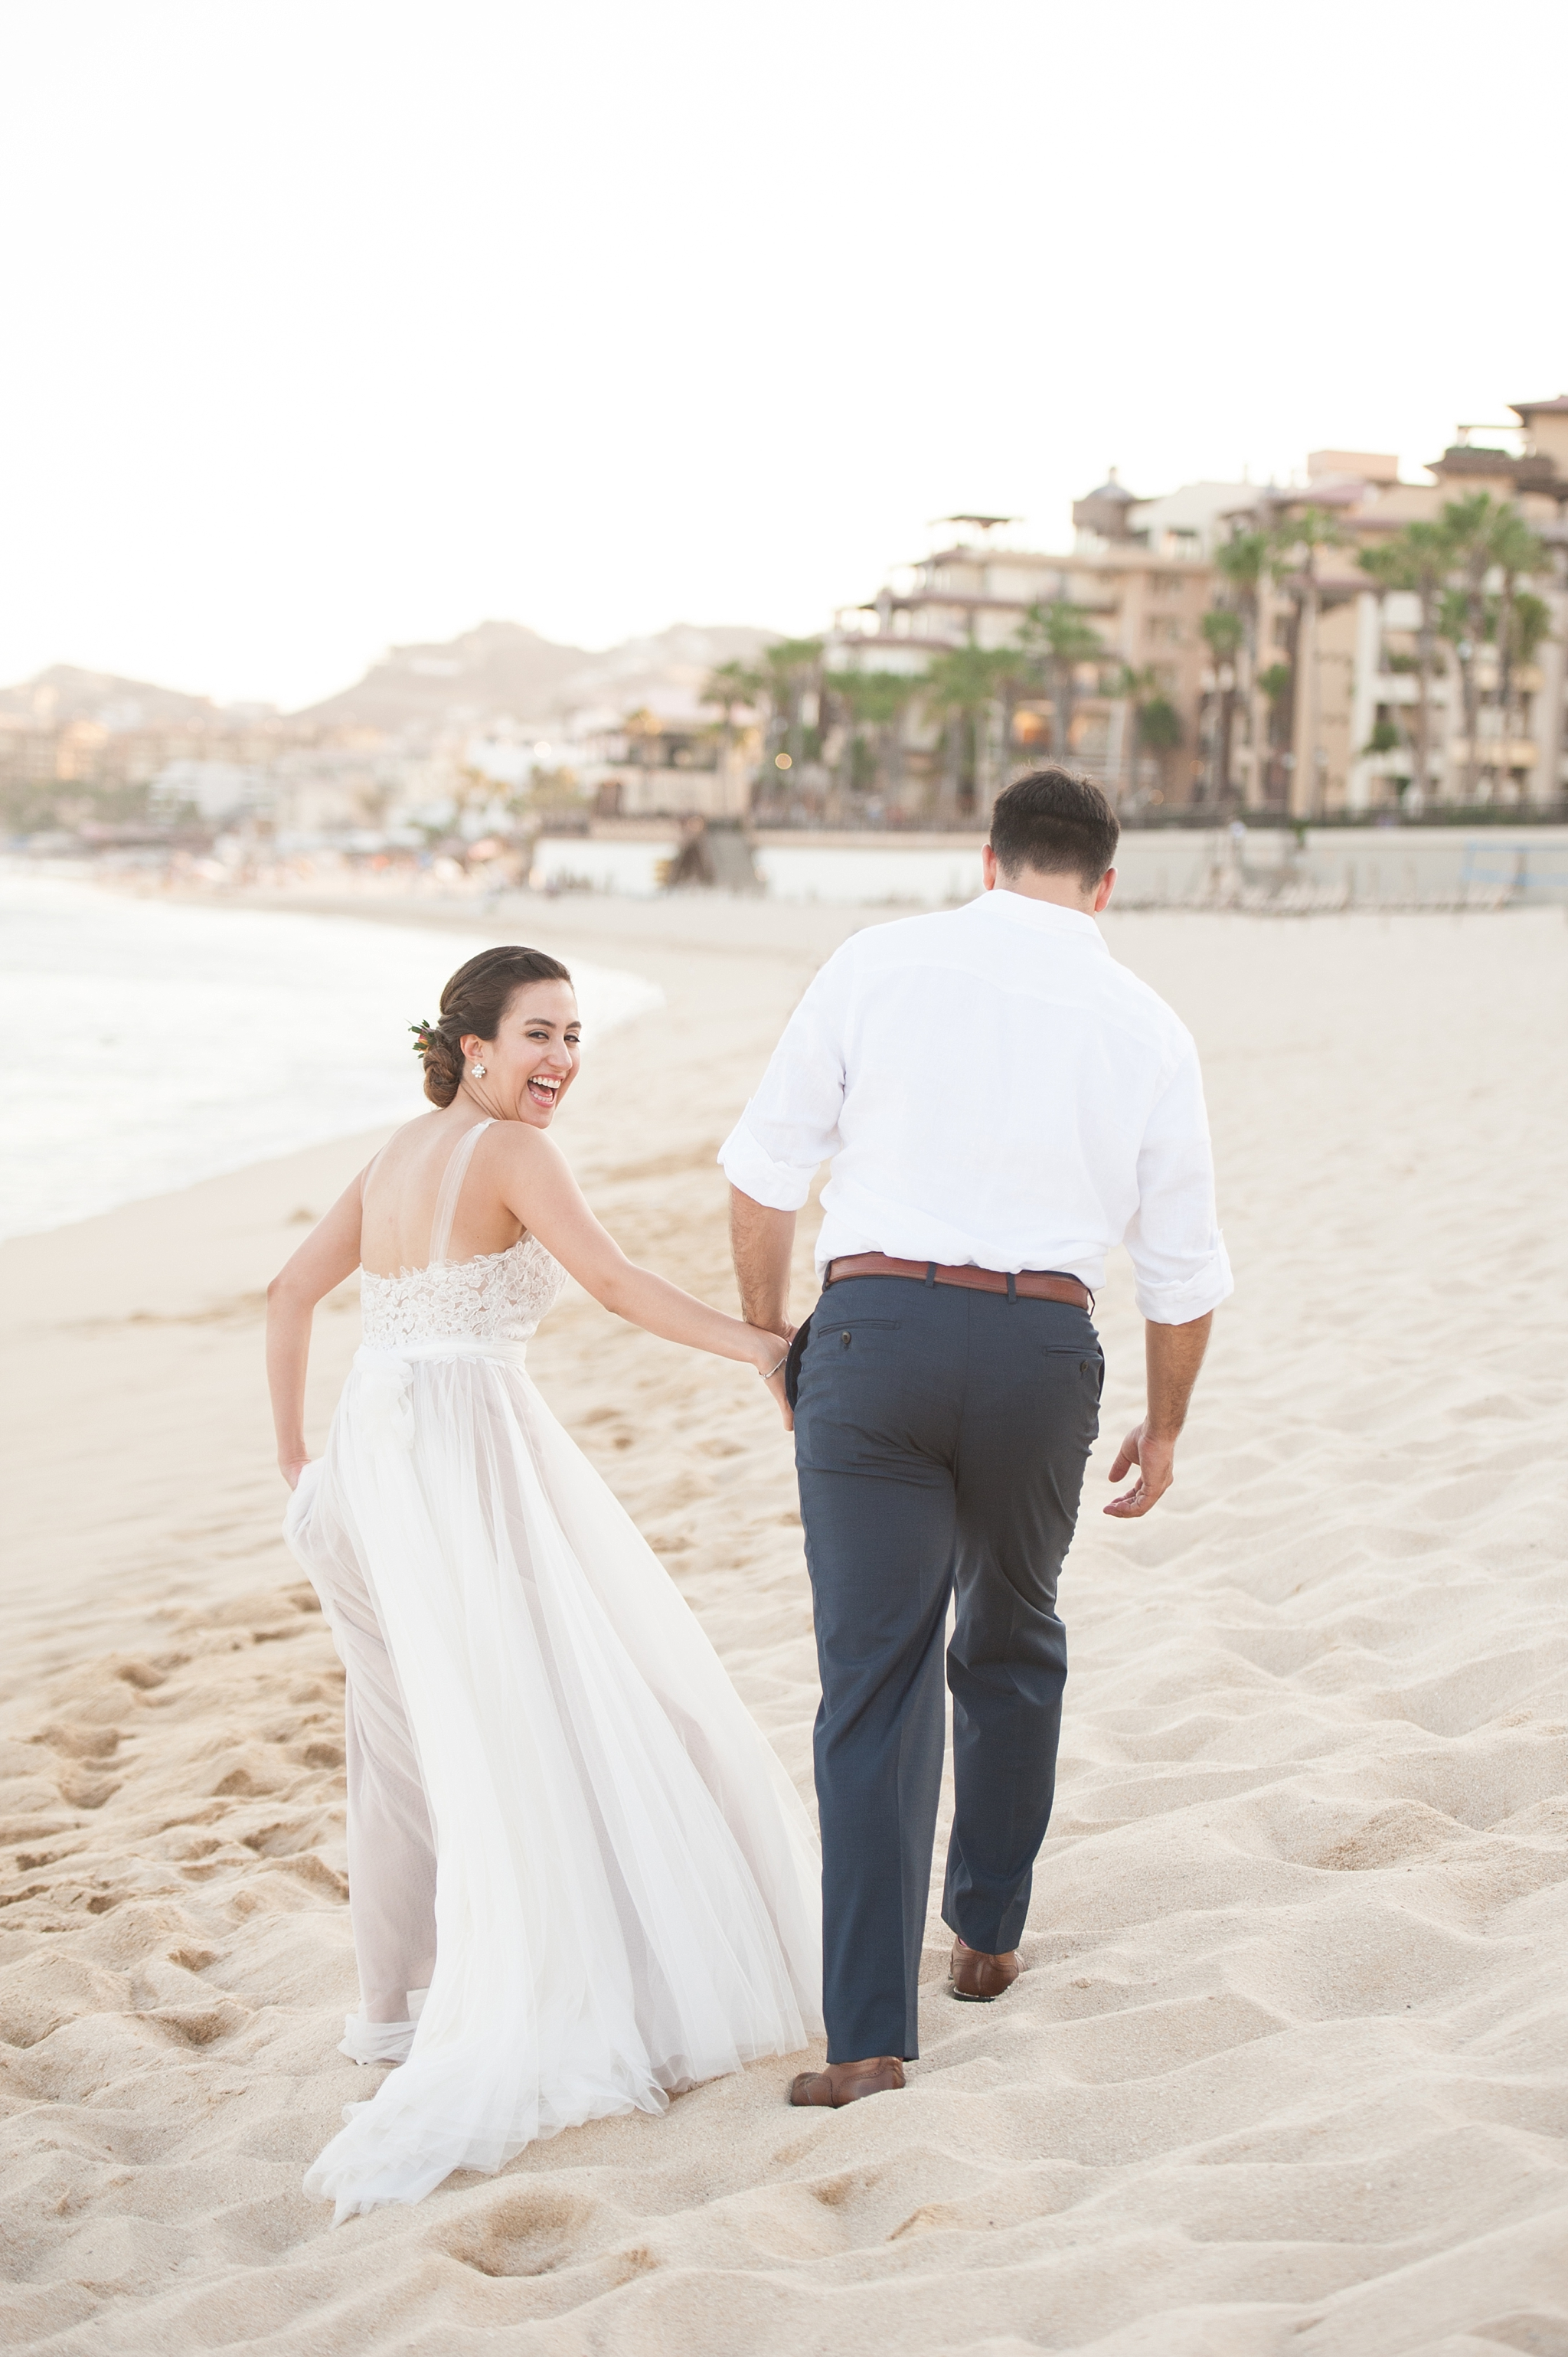 WANT THE DEETS? - Planning a destination wedding?Or a honeymoon?Or a anniversary trip?Or a weekend getaway?Find details about our favorite places to visit, places to stay, food to grab, and more HERE!